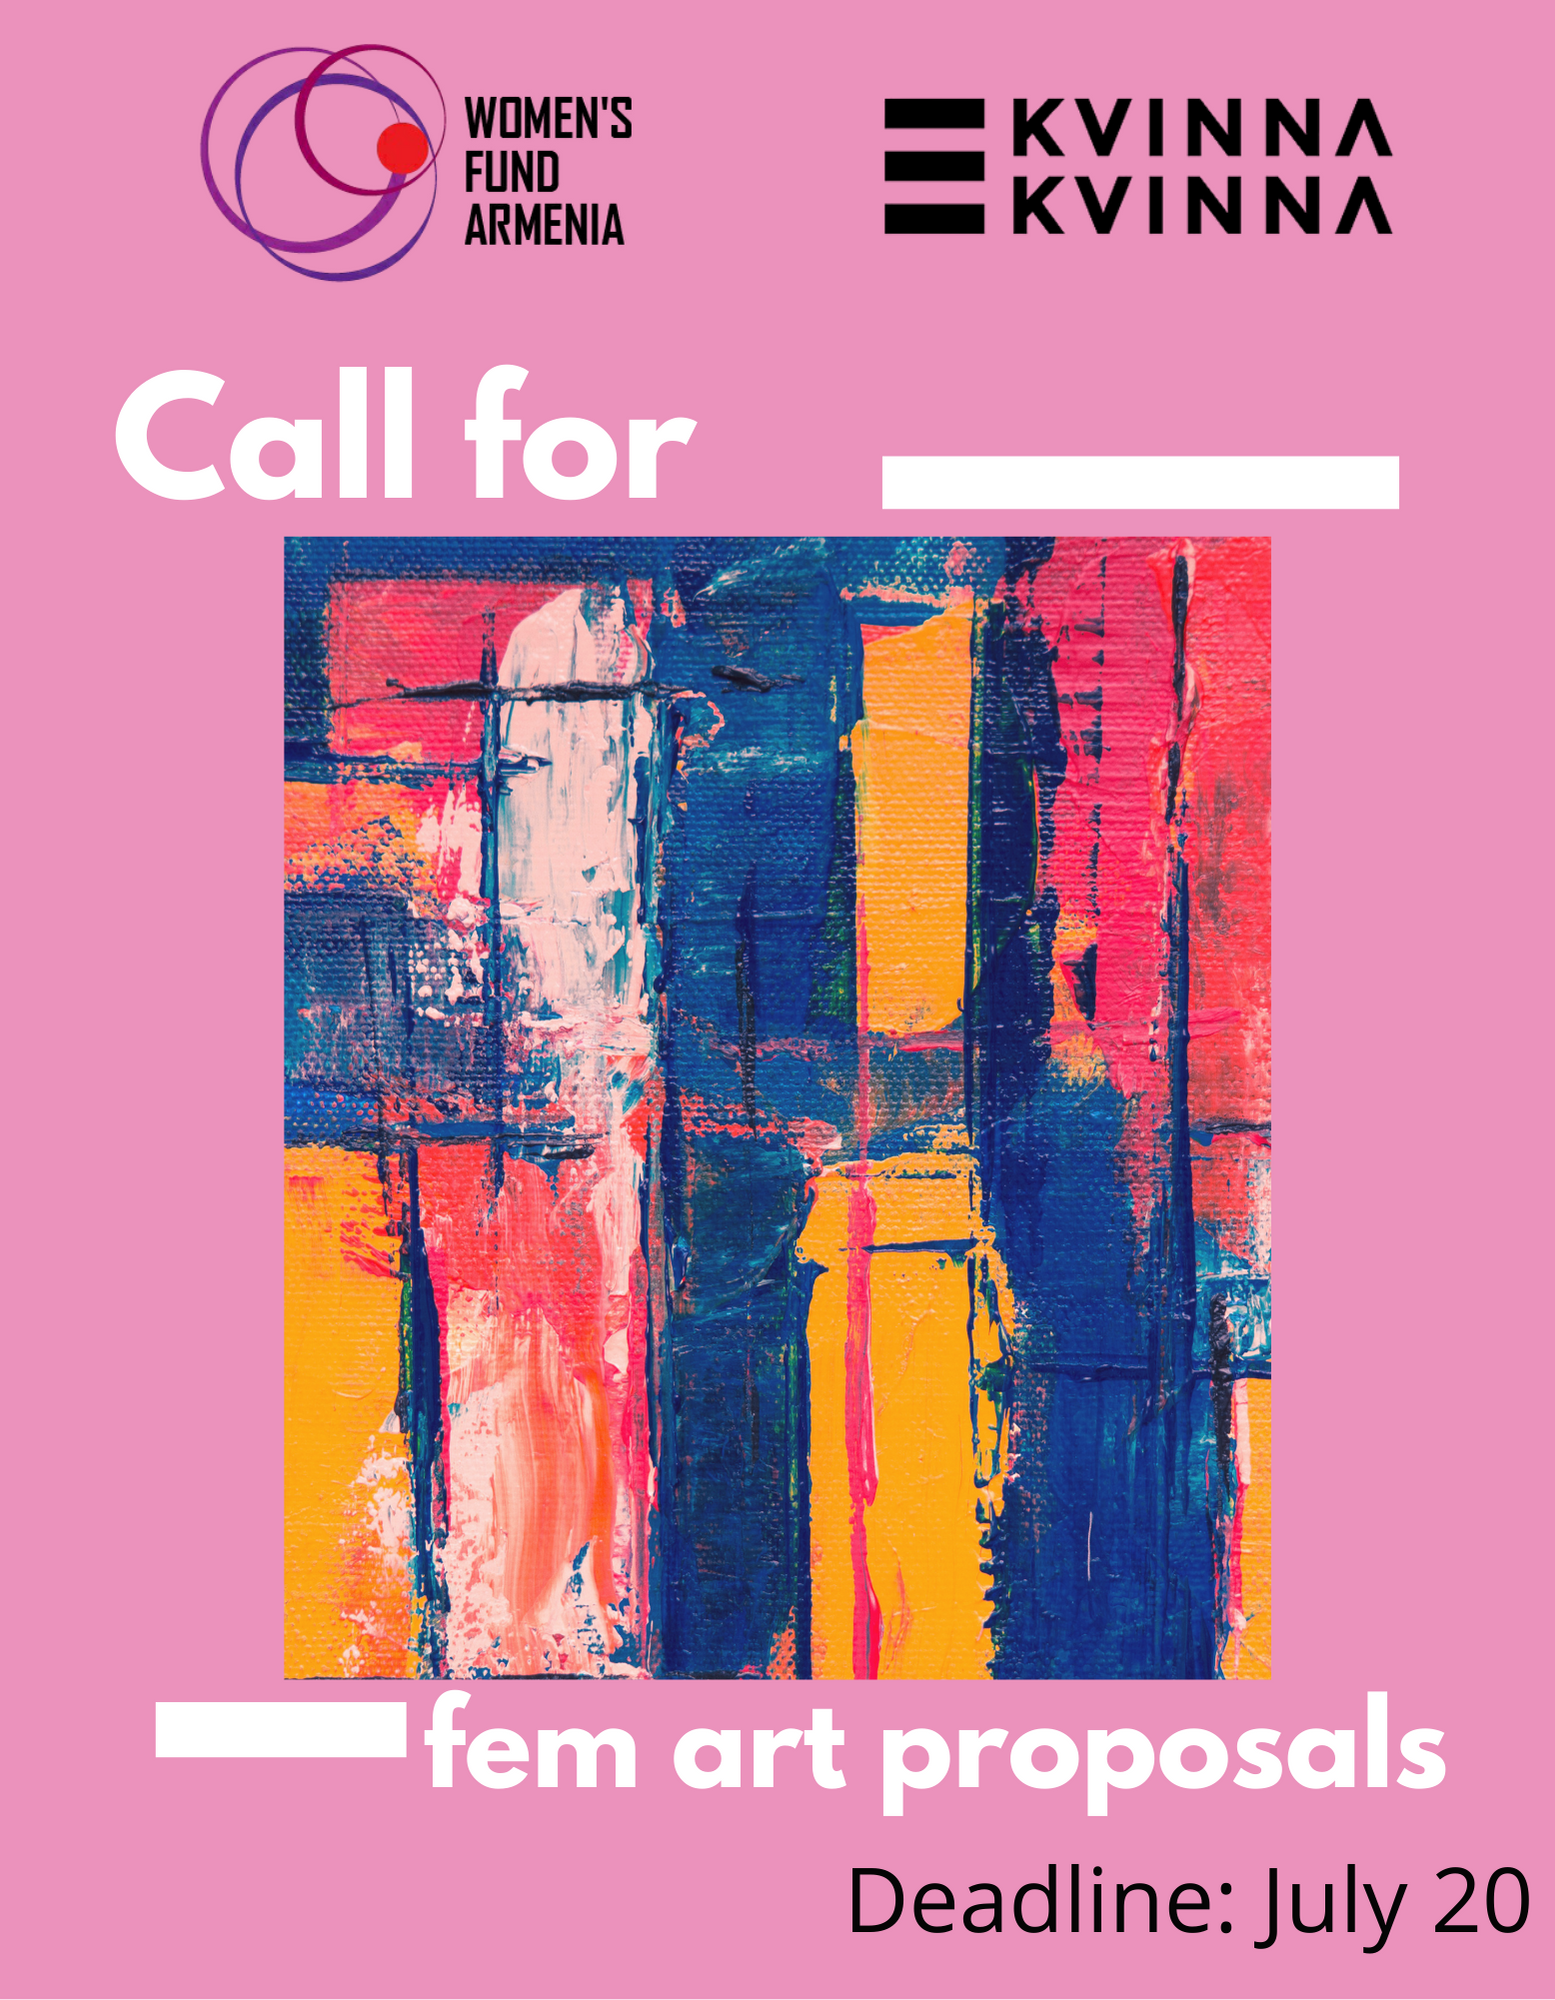 Call for feminist art proposals